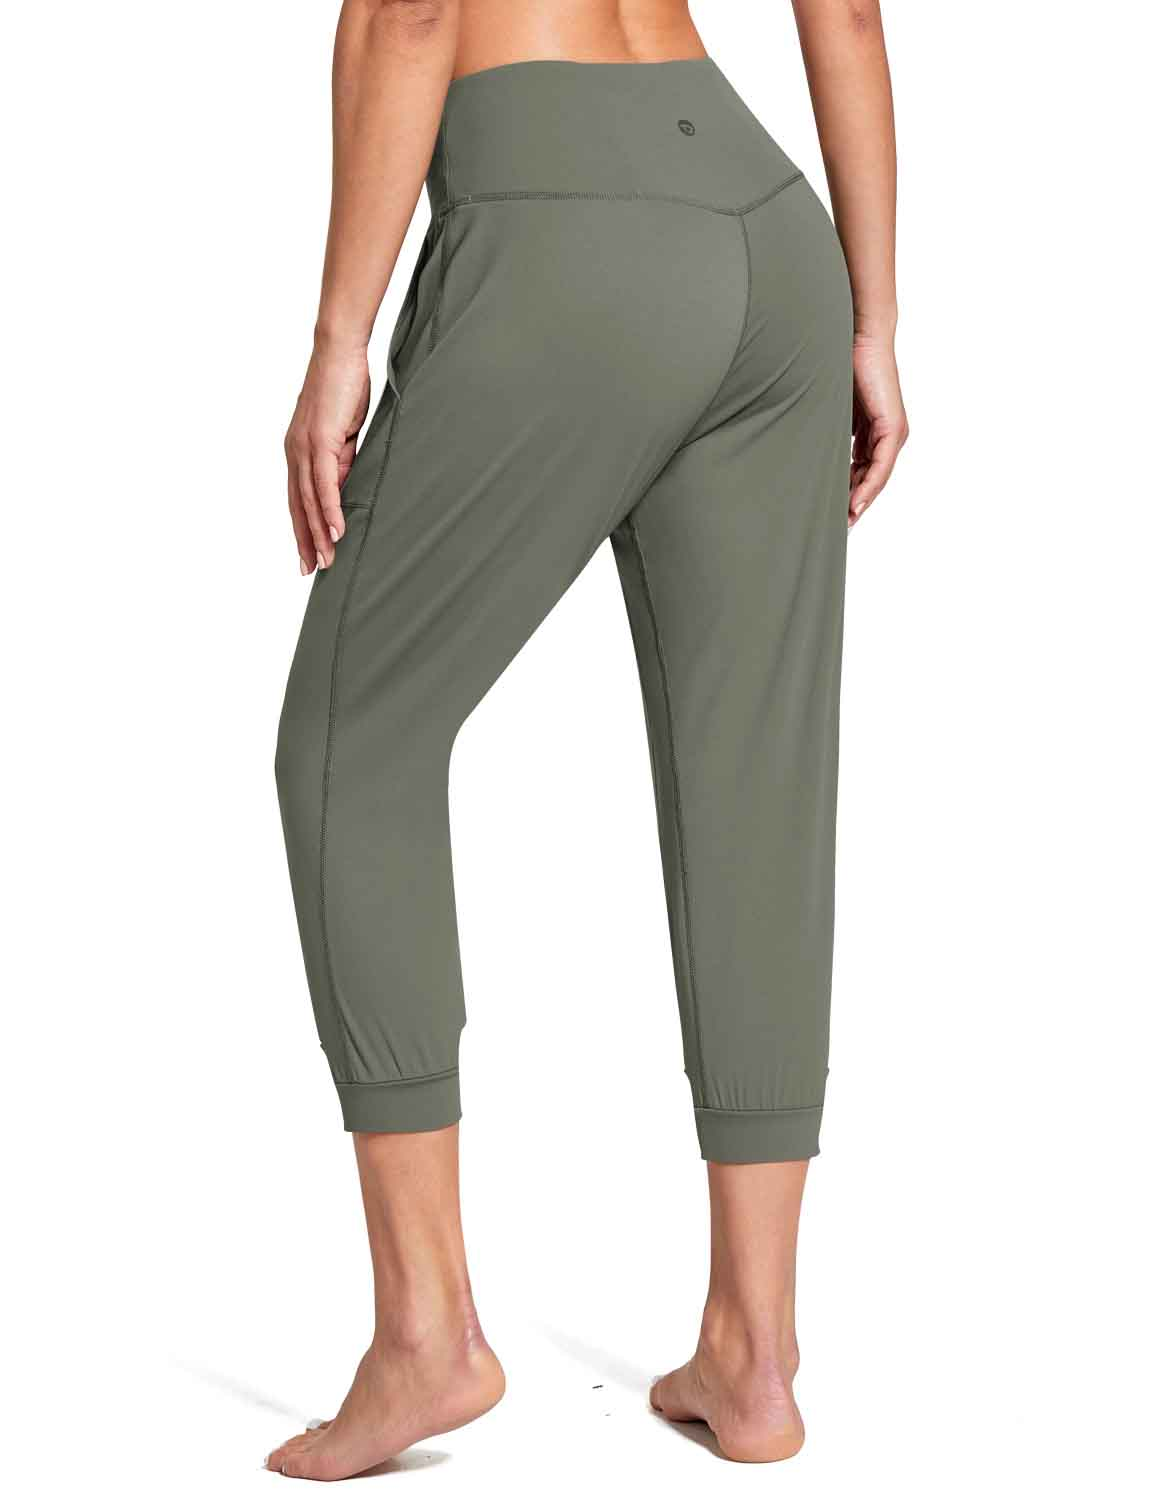 Baleaf Women's High Rise Soft Cropped Workout Pockets Joggers grey back